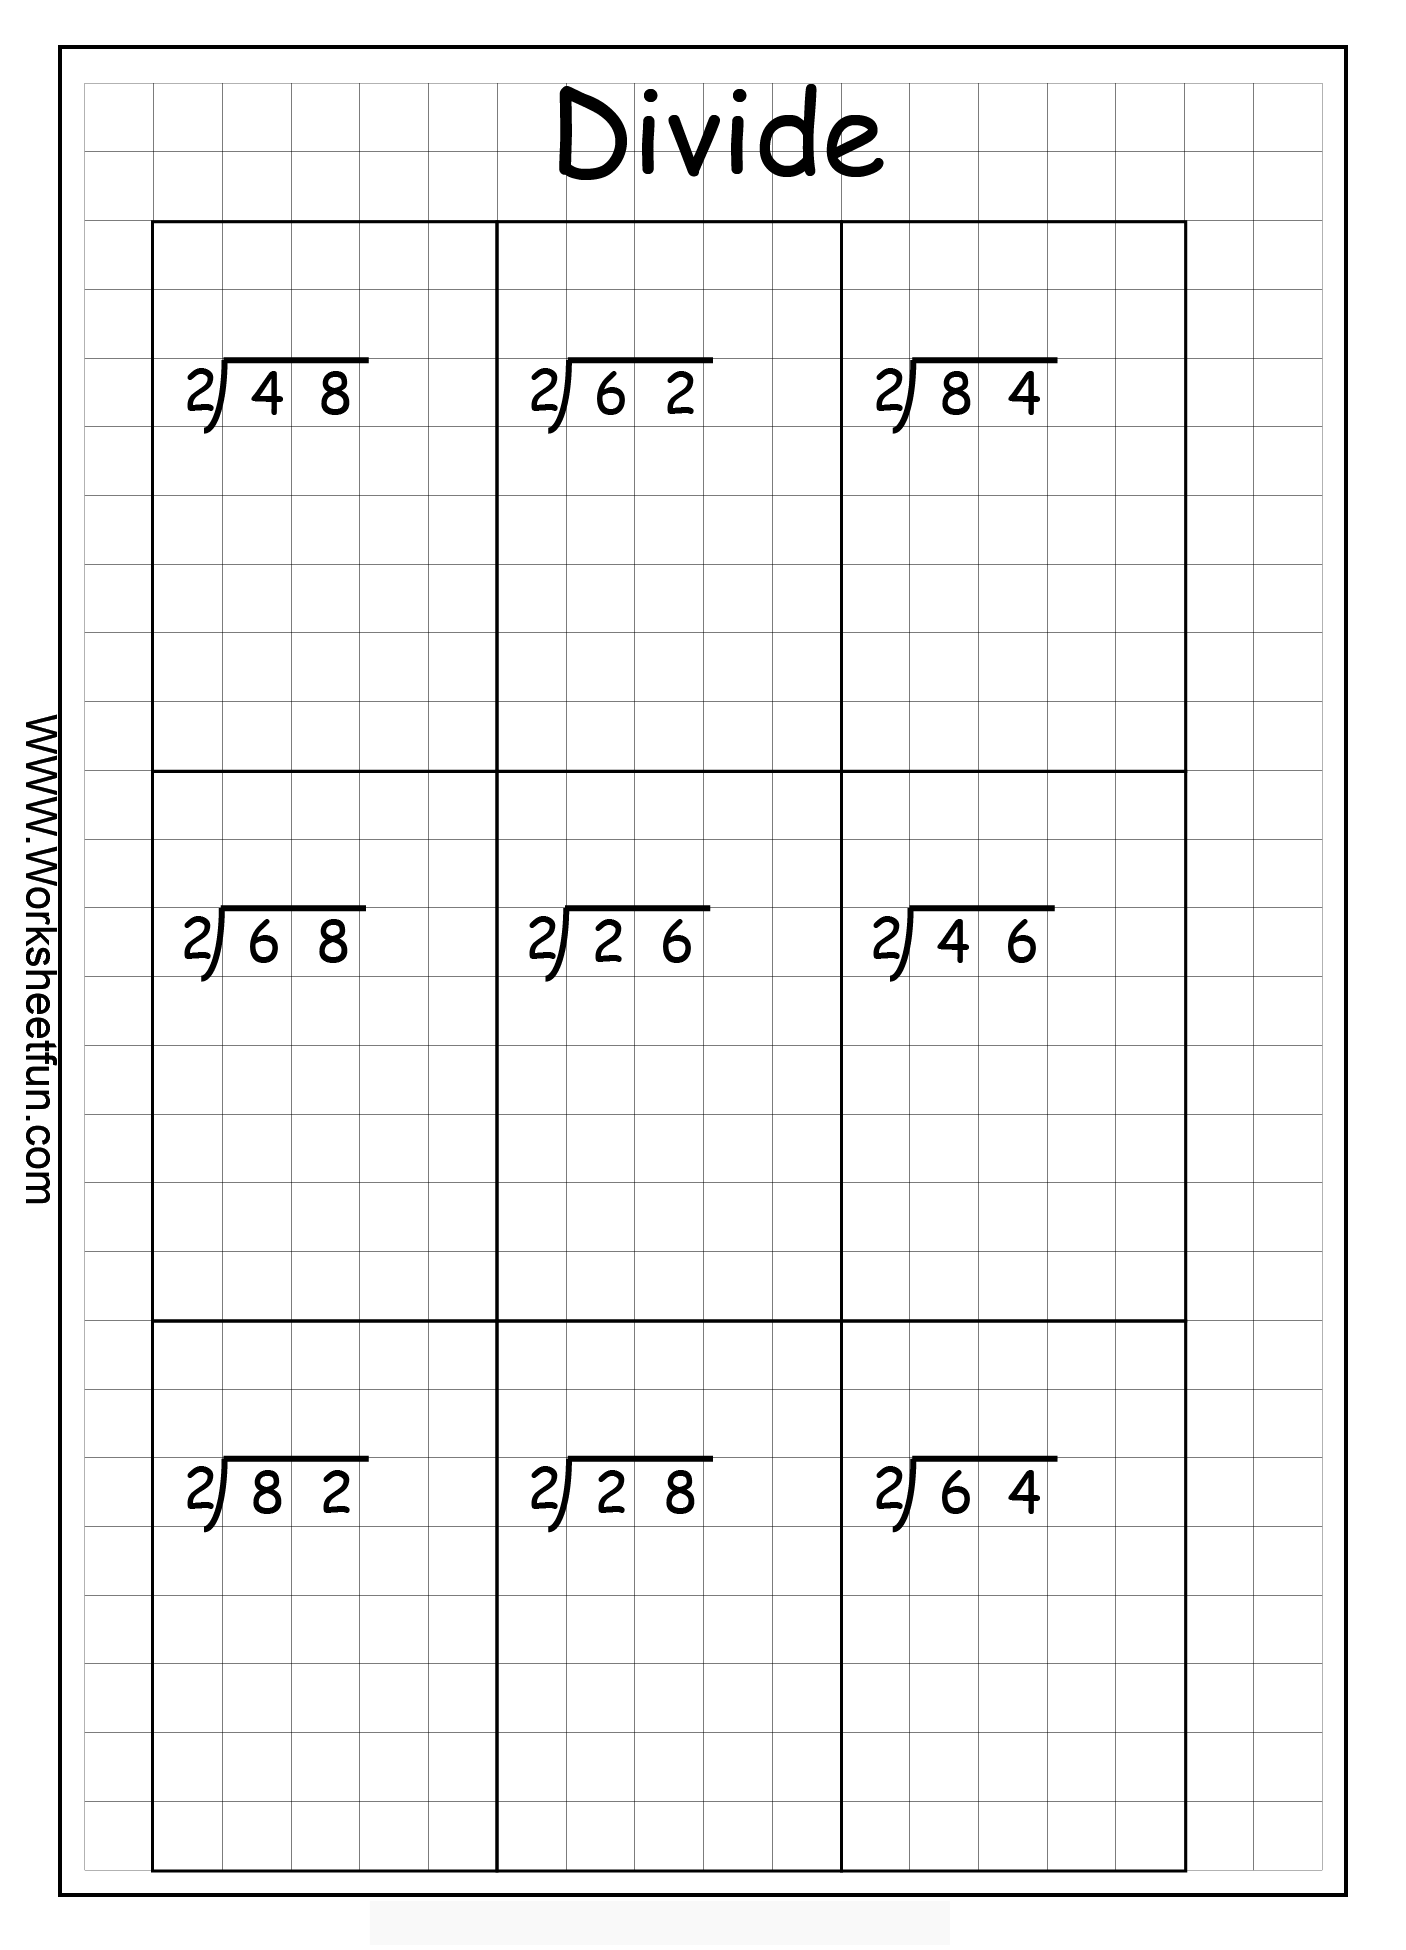 Long Division 2 Digits By 1 Digit No Remainder 10 Worksheets – Division Worksheets for Grade 2